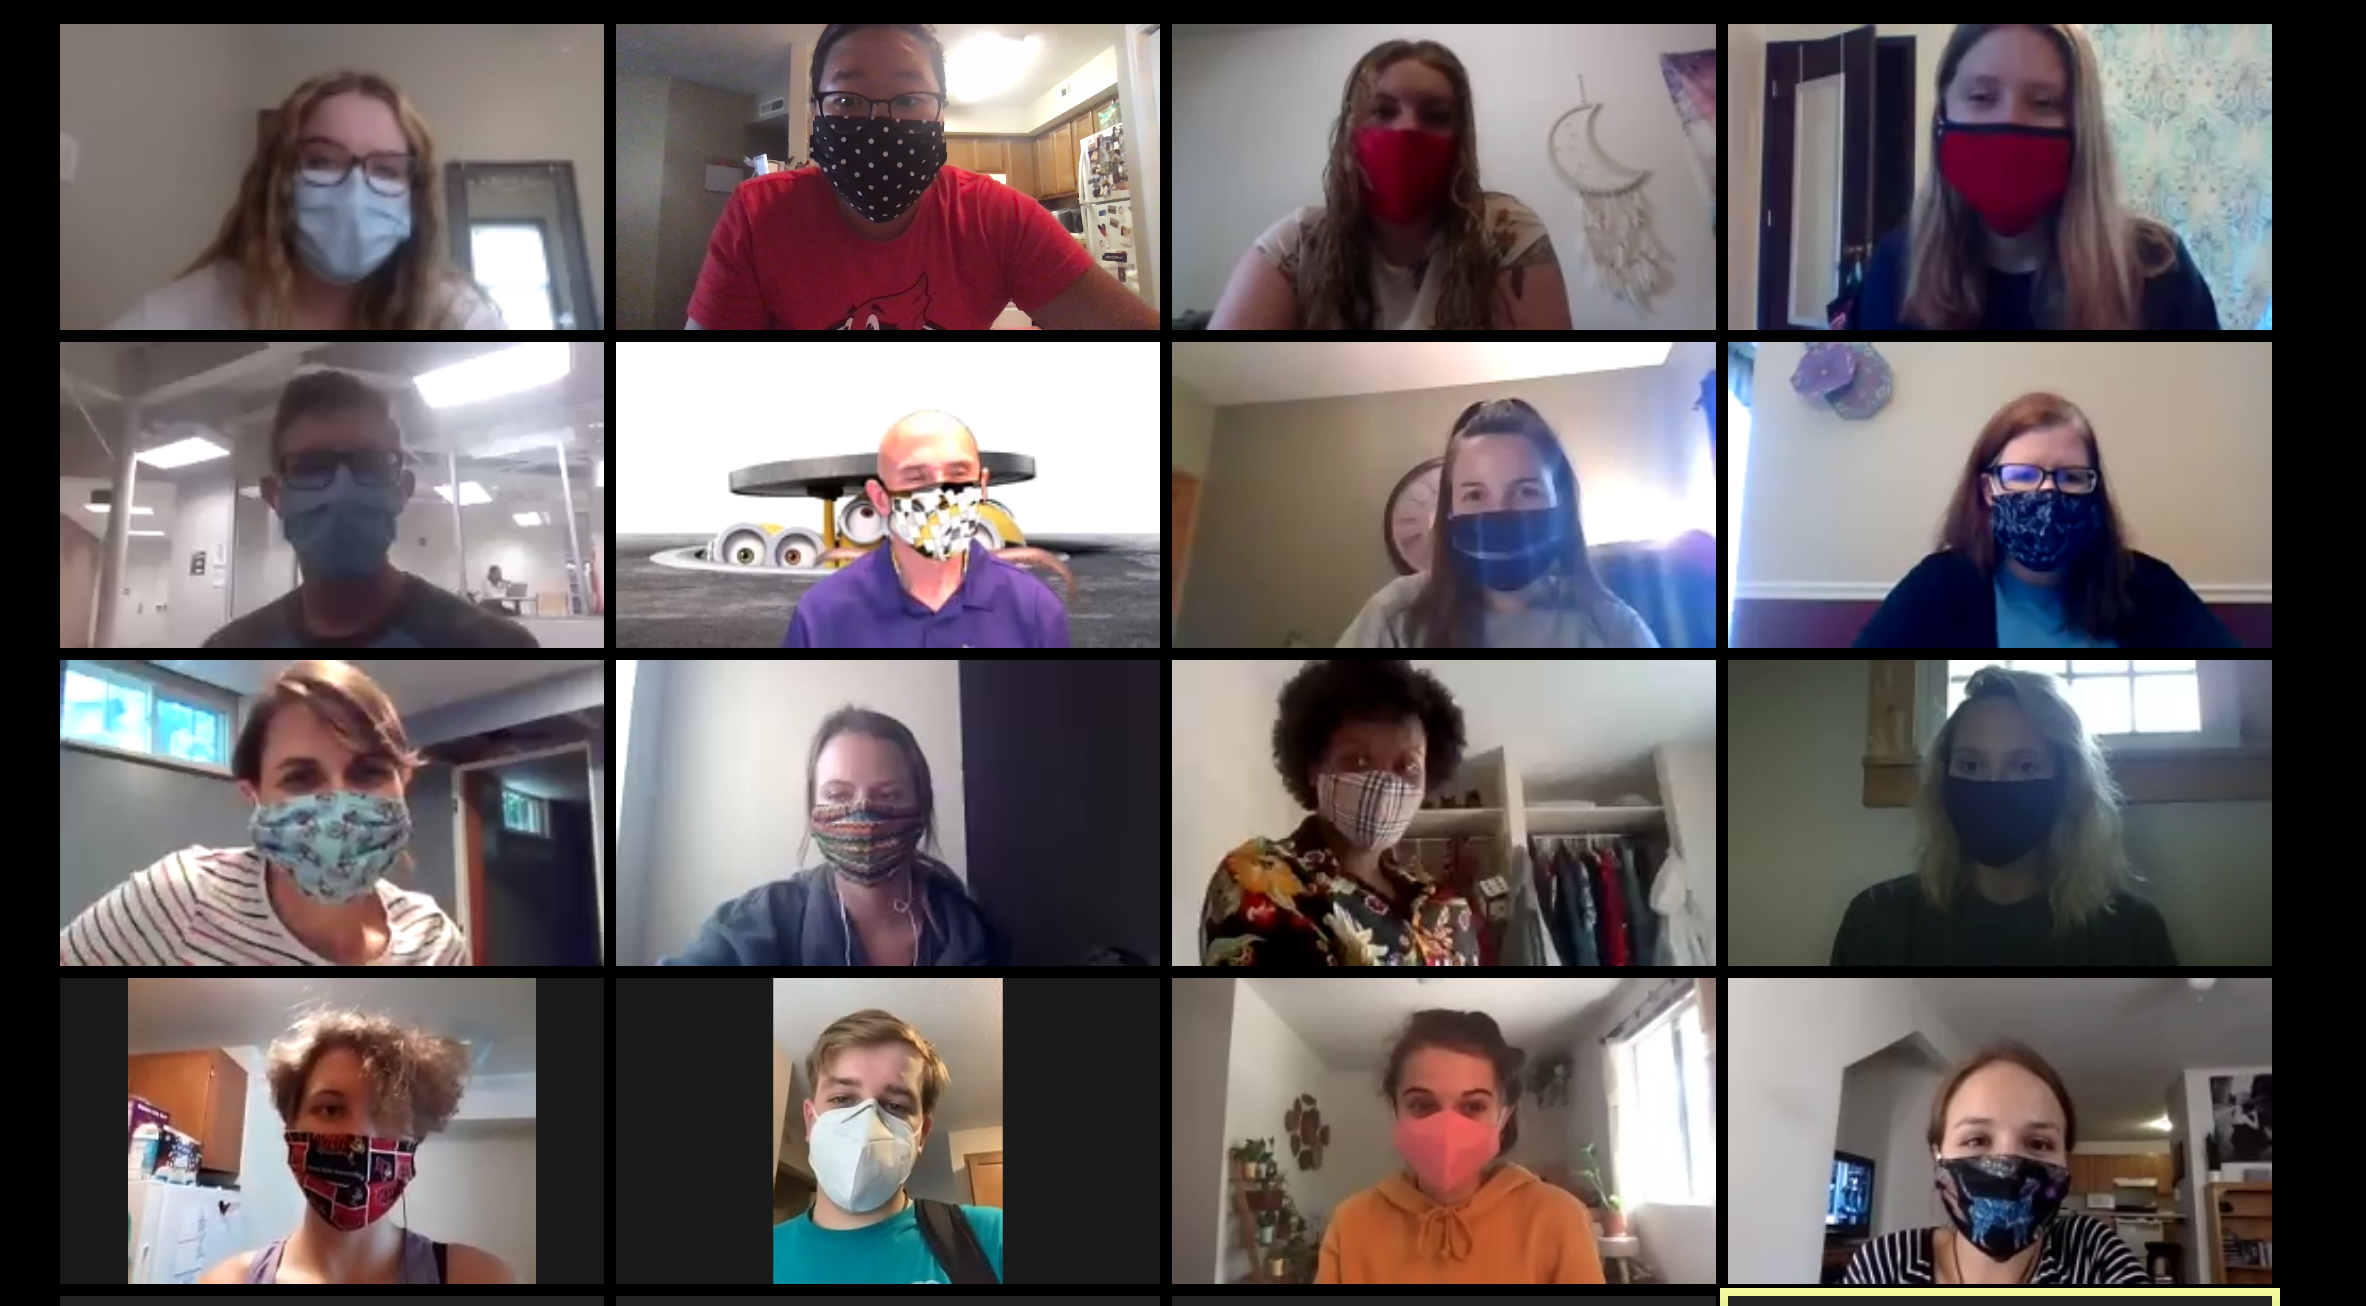 Wellness ambassadors communicating via Zoom